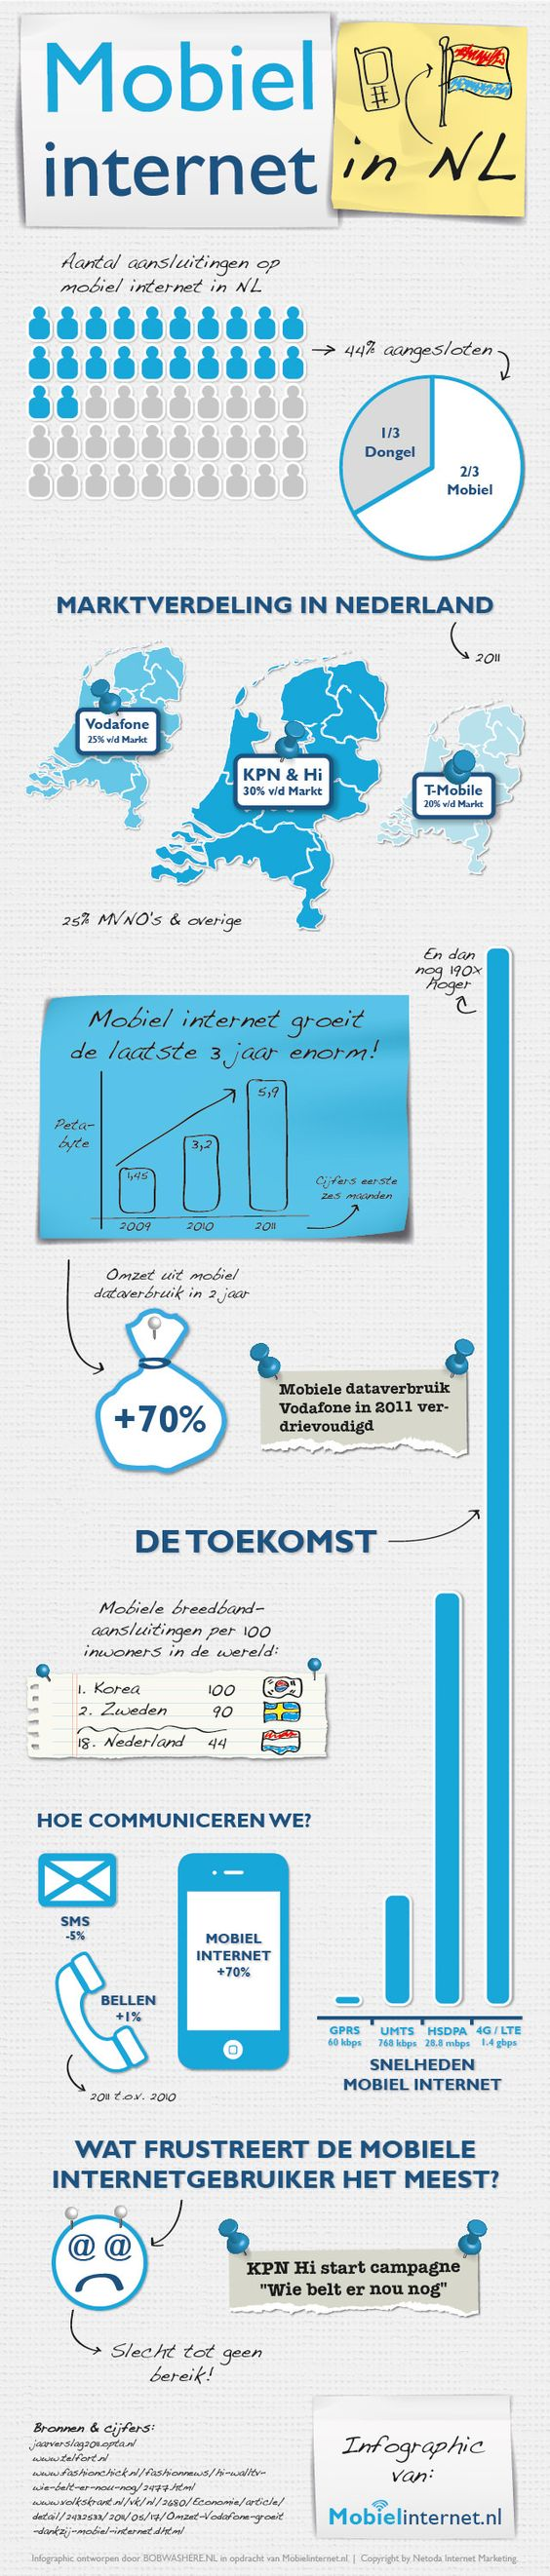 Infographic about mobiel internet in the Netherlands design by Bob Was Here